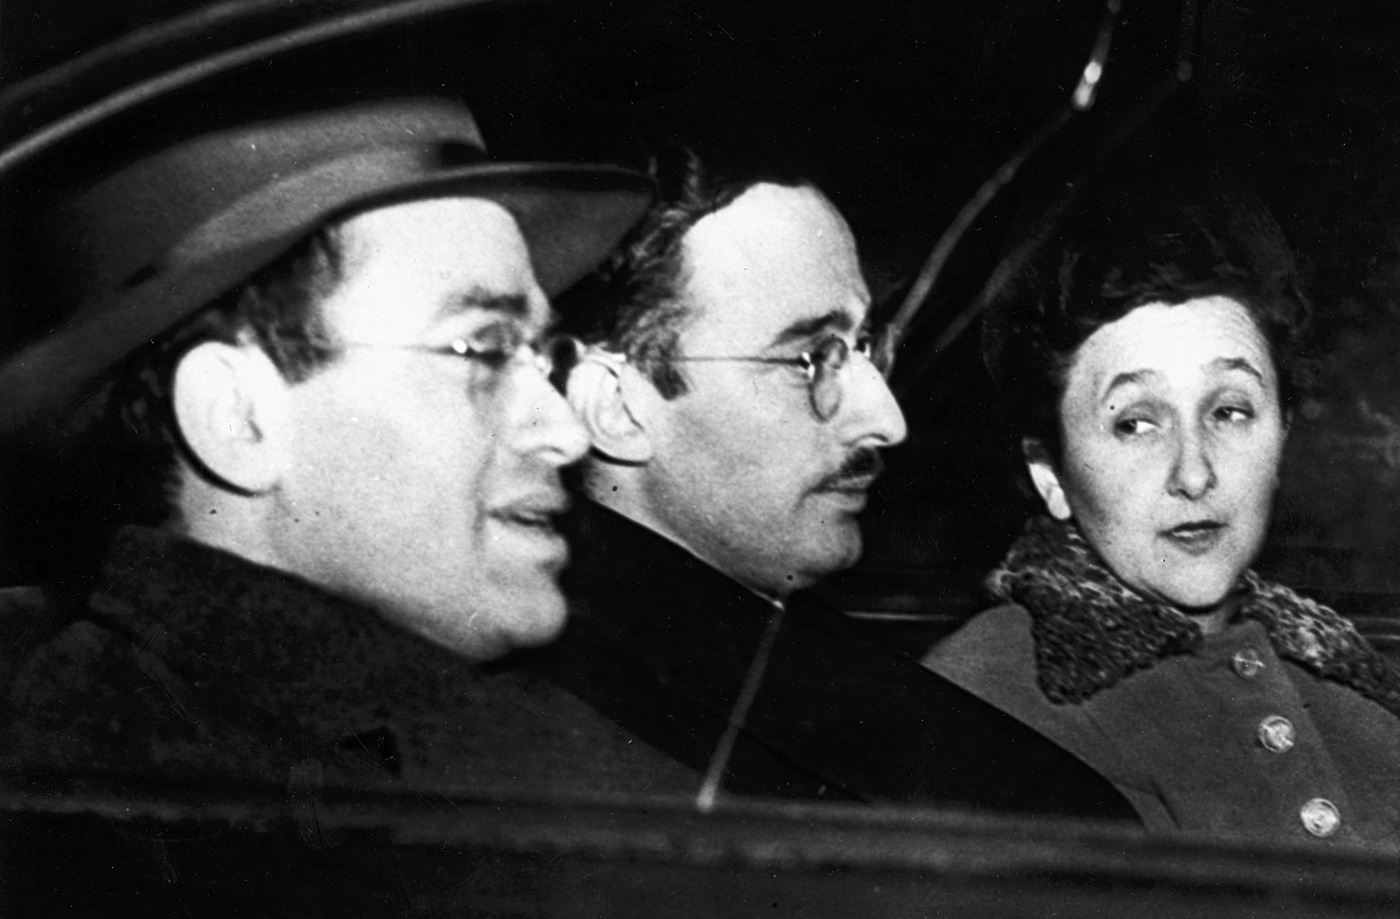 Julius and Ethel Rosenberg, on trial for espionage, ride with Morton Sobell (far left), a member of thier spy ring in 1951.